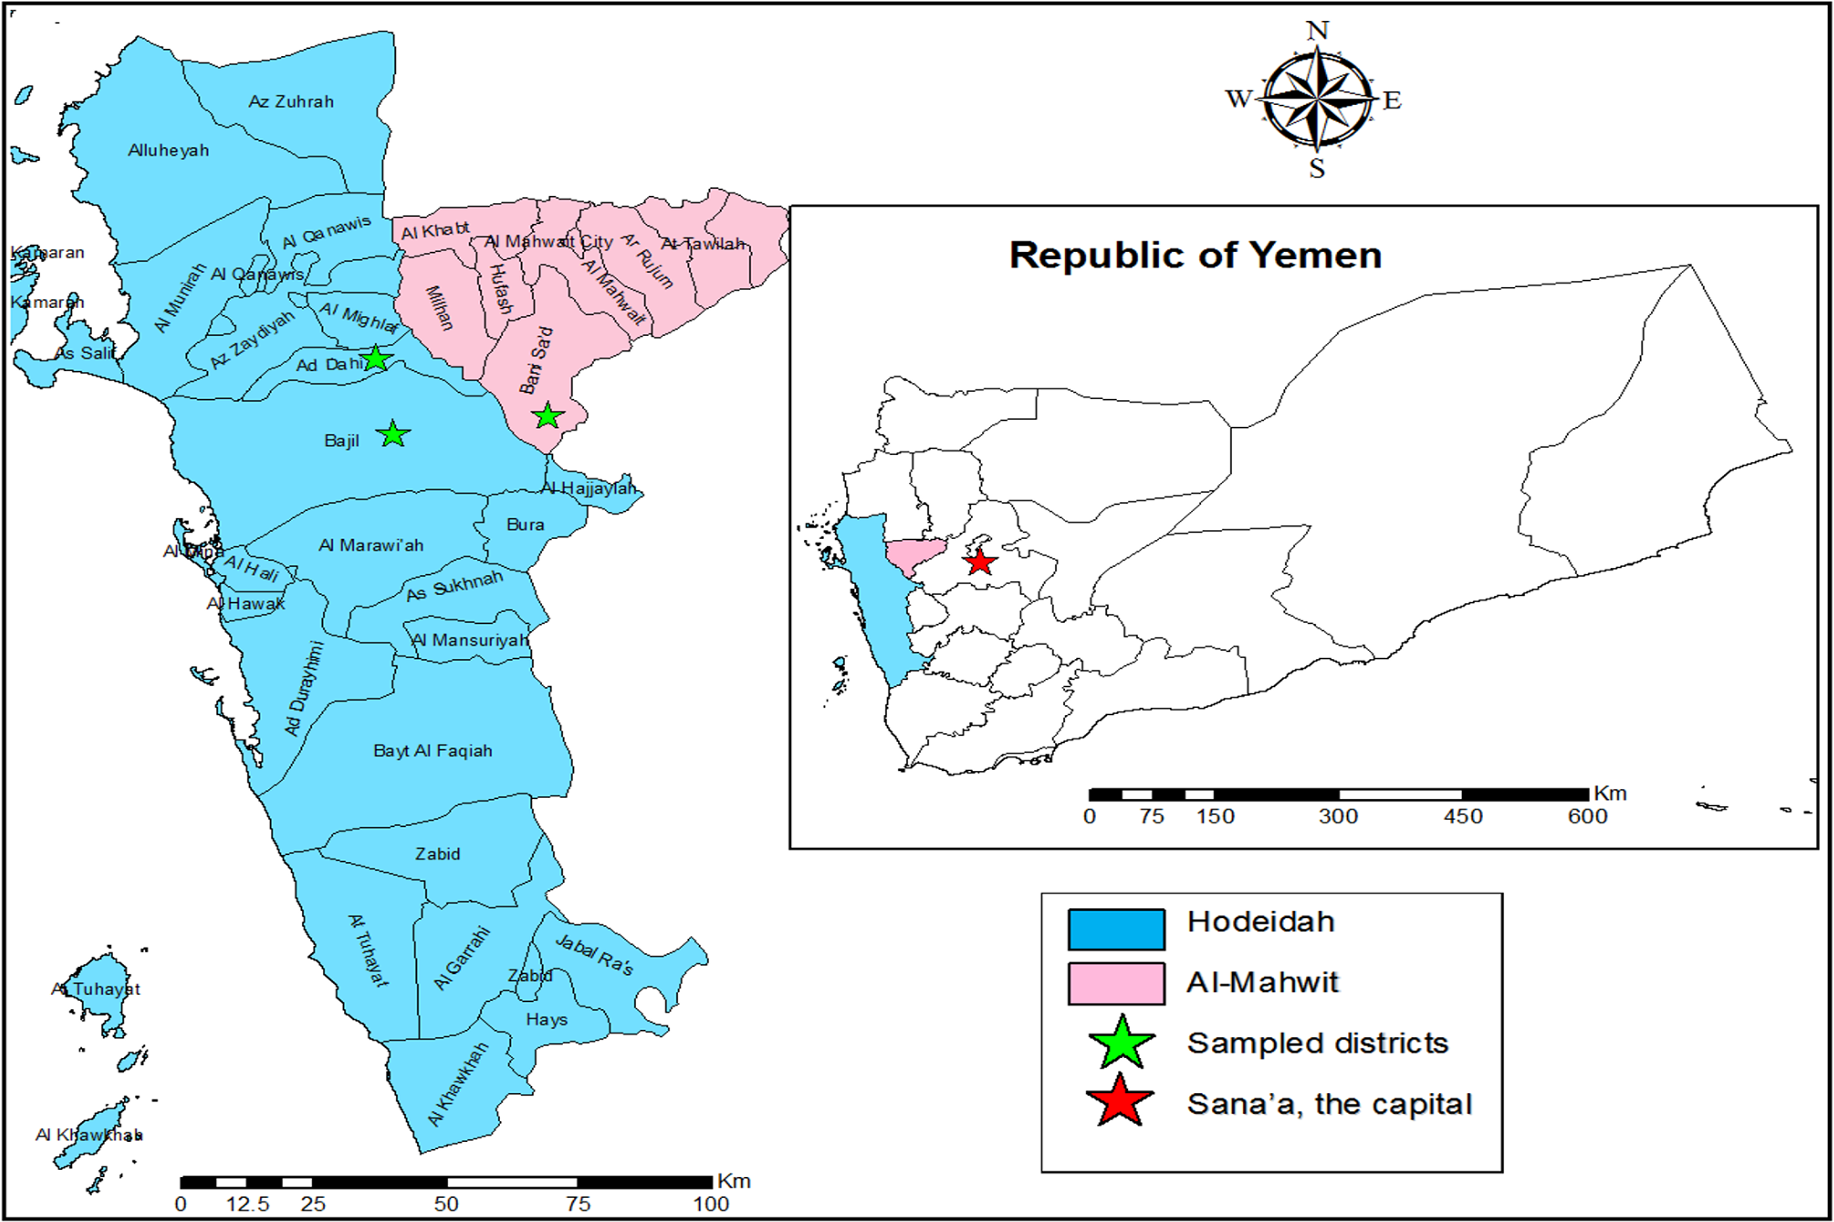 Yemen Map Of Districts on map of russia districts, map of japan districts, map of bhutan districts, map of spain districts, map of guatemala districts, map of cambodia districts, map of ireland districts, map of tajikistan districts, map of iraq districts, map of lesotho districts, map of pakistan districts, map of bangladesh districts, map of monaco districts, map of panama districts, map of germany districts, map of france districts, map of mexico districts, map of afghanistan districts, map of puerto rico districts, map of malawi districts,